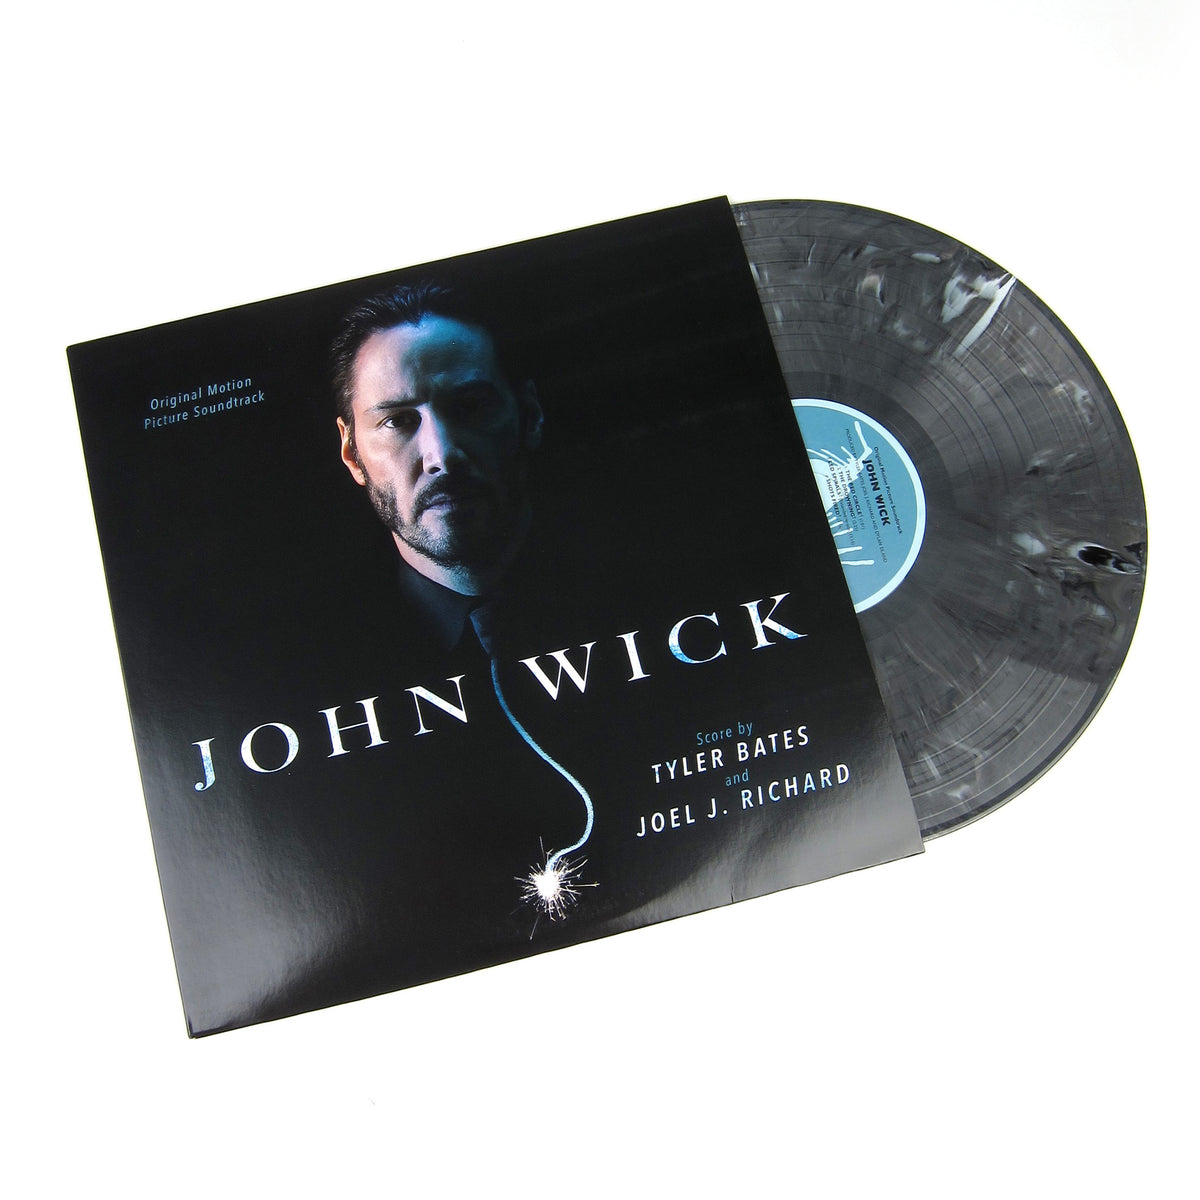 Tyler Bates And Joel J. Richard: John Wick Original Motion Picture Soundtrack (180g, Colored Vinyl) Vinyl LP (Record Store Day)